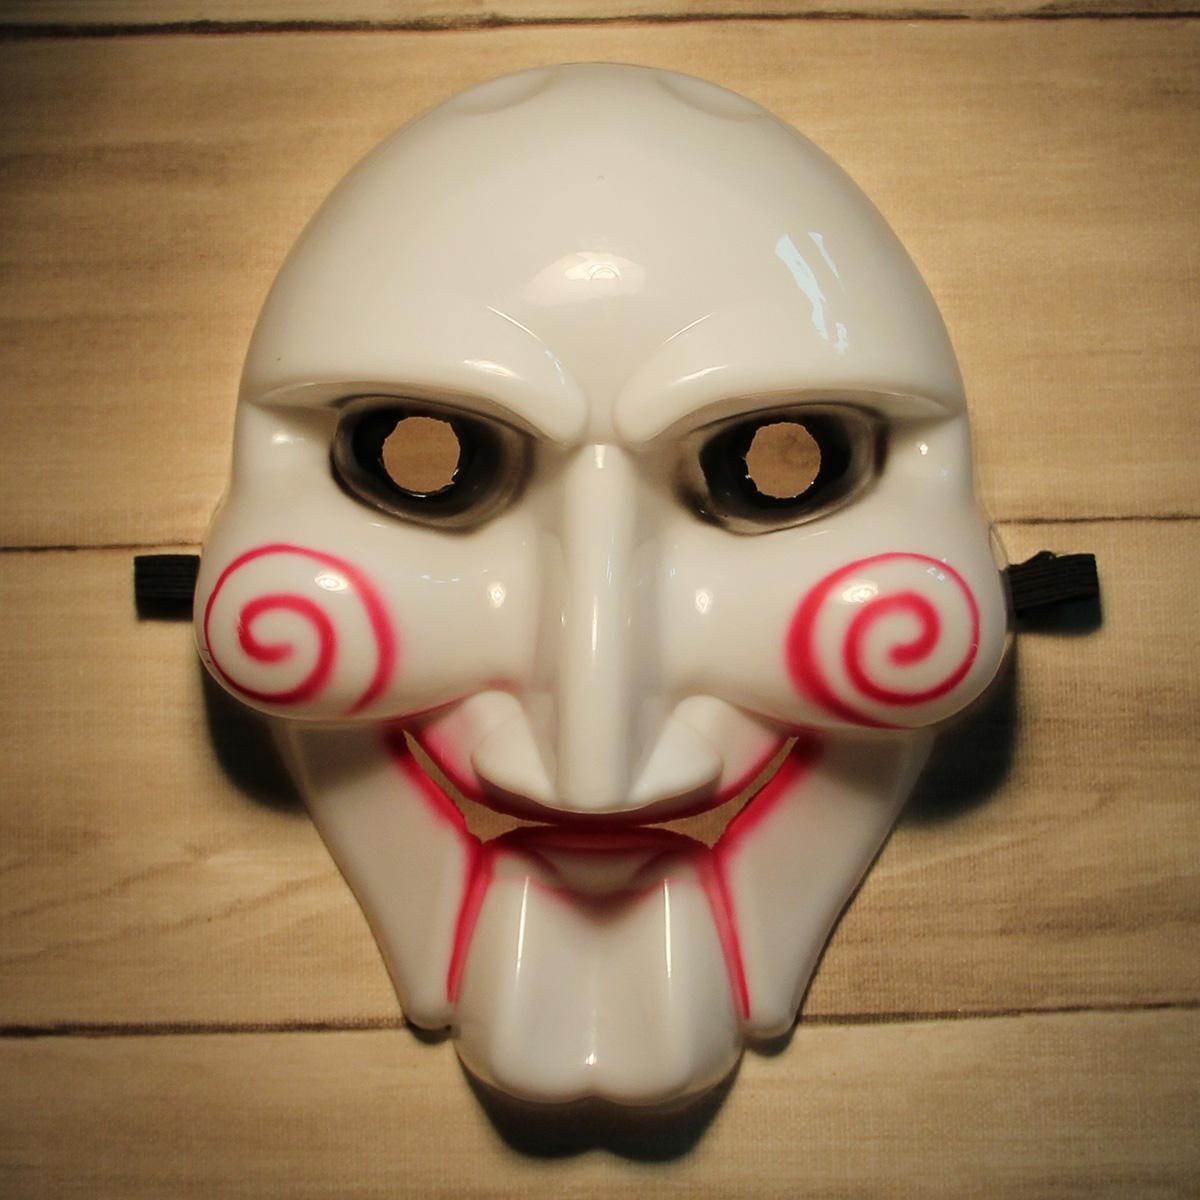 Scary Saw Billy Pvc Mask For Halloween Masquerade Parties White + ...